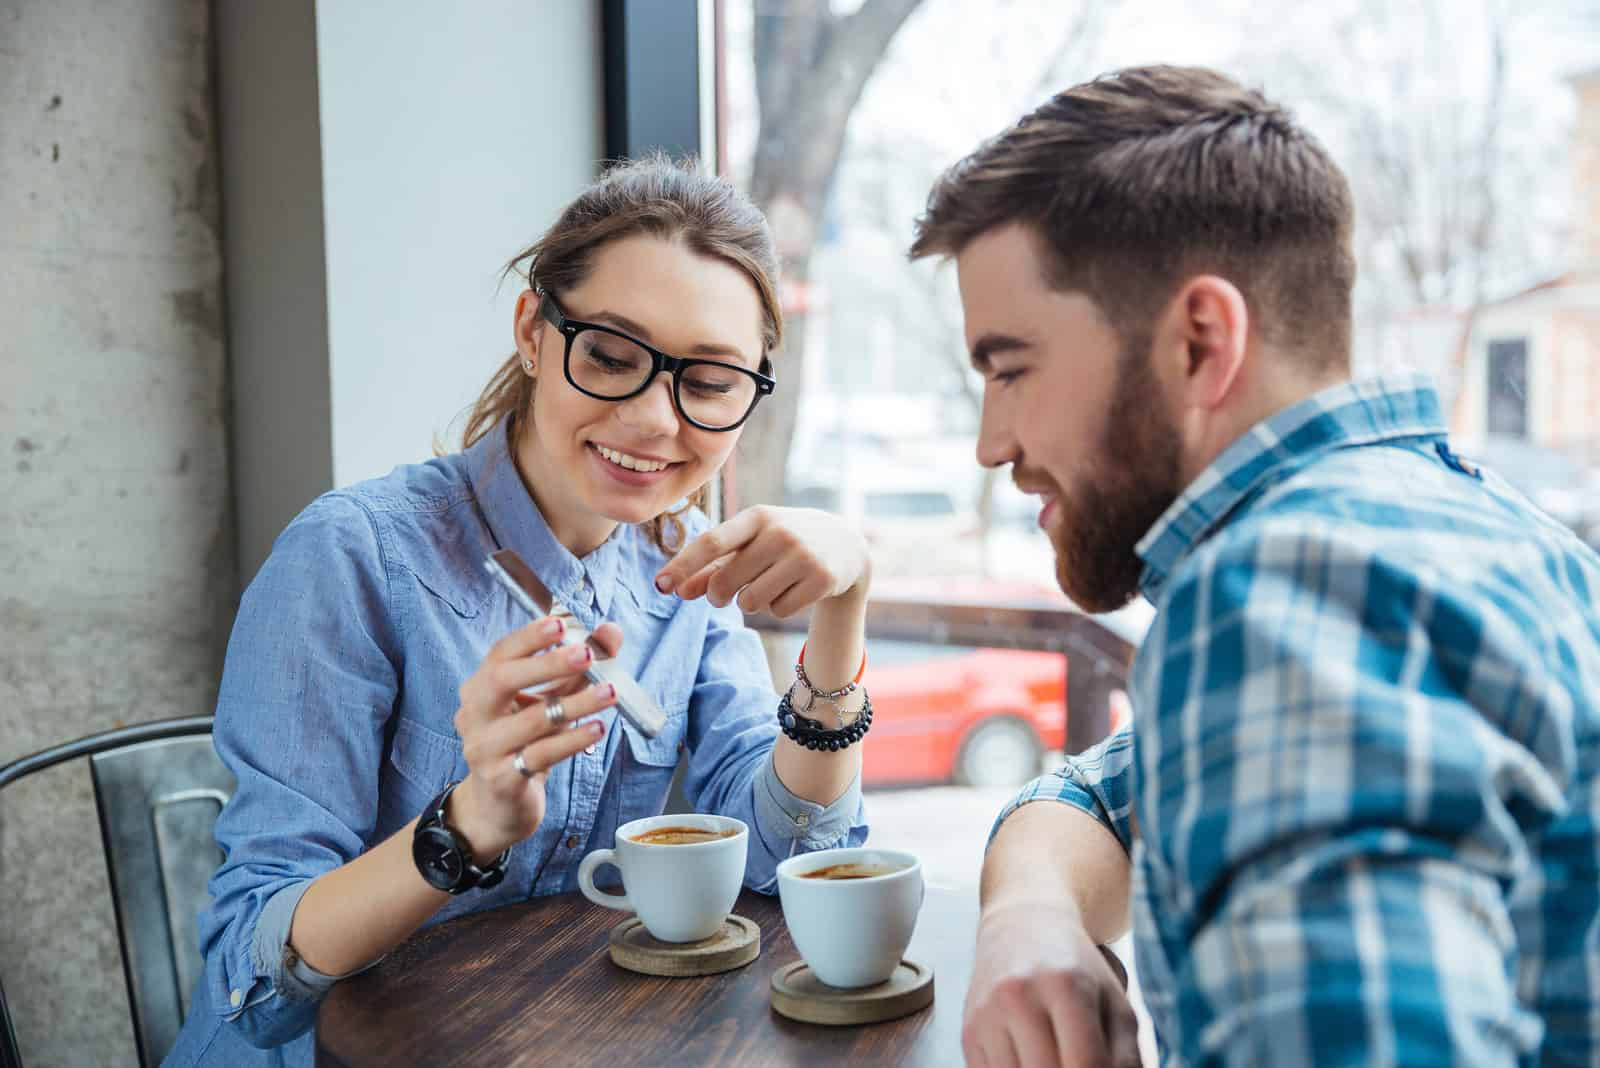 Happy couple using smartphone together and drinking coffee in cafe